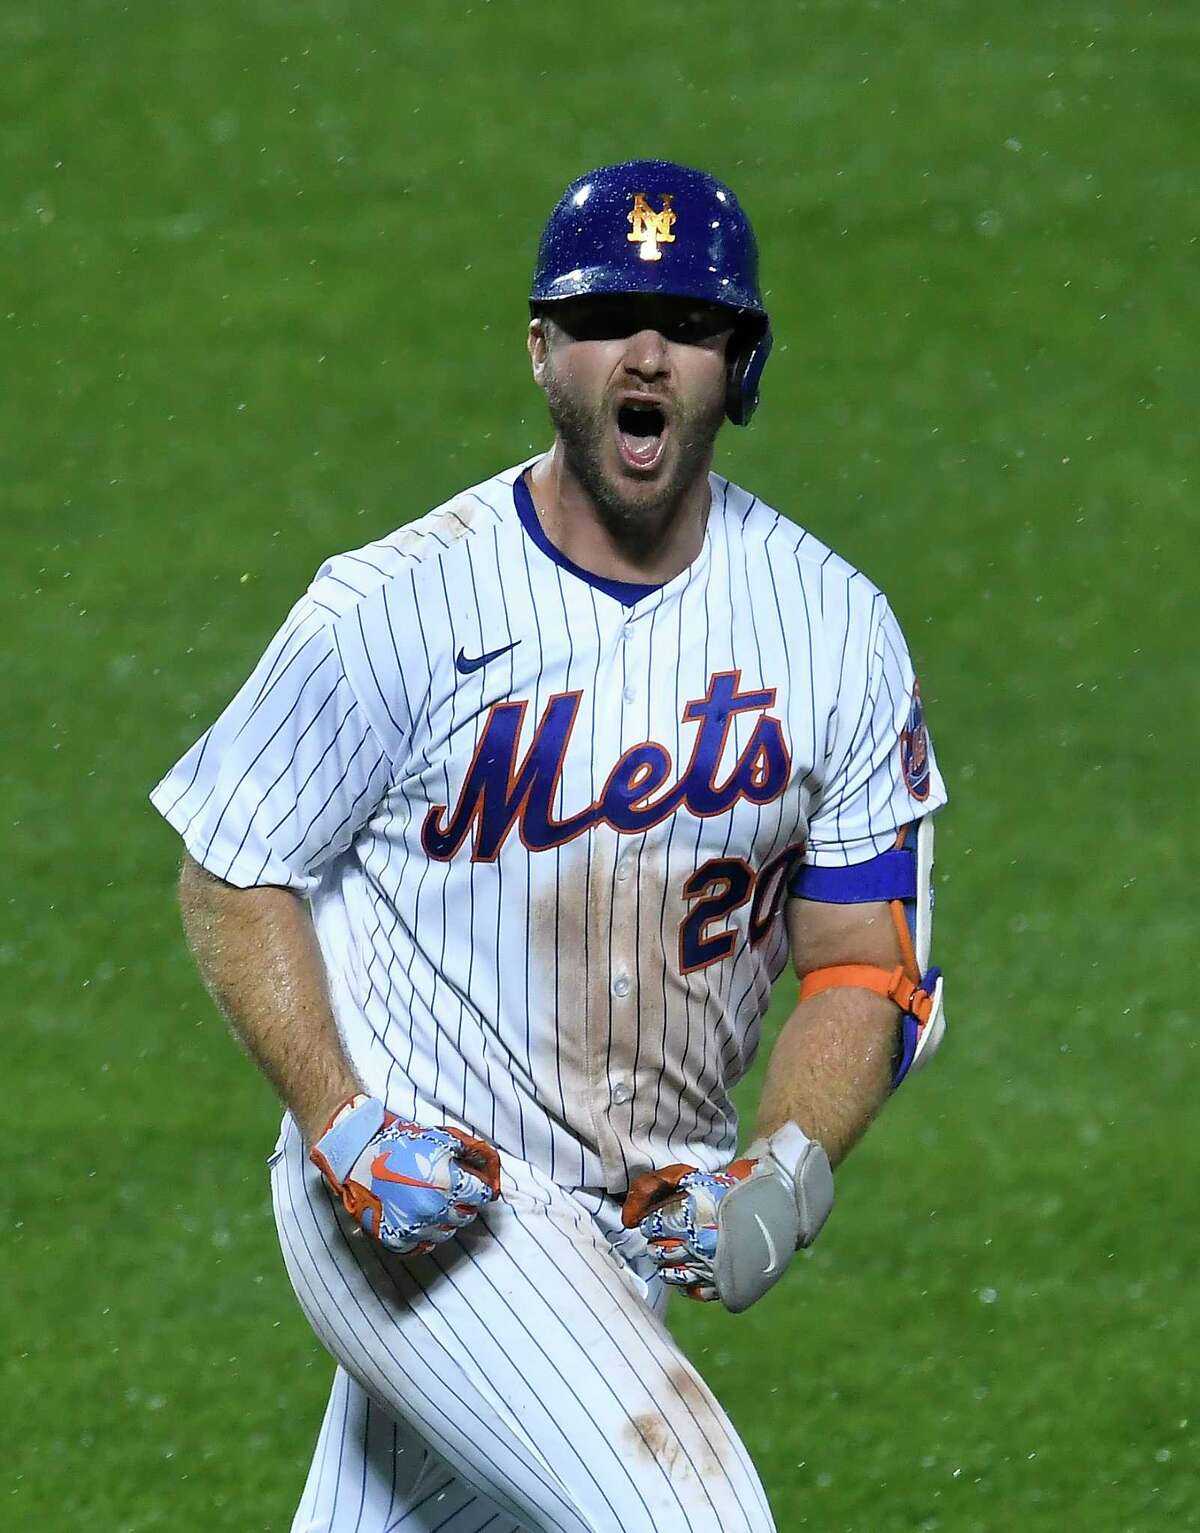 NEW YORK, NEW YORK - SEPTEMBER 03: Pete Alonso #20 of the New York Mets reacts after hitting a two-run walk-off home run during the tenth inning against the New York Yankees at Citi Field on September 03, 2020 in the Queens borough of New York City. The Mets won 9-7. (Photo by Sarah Stier/Getty Images)